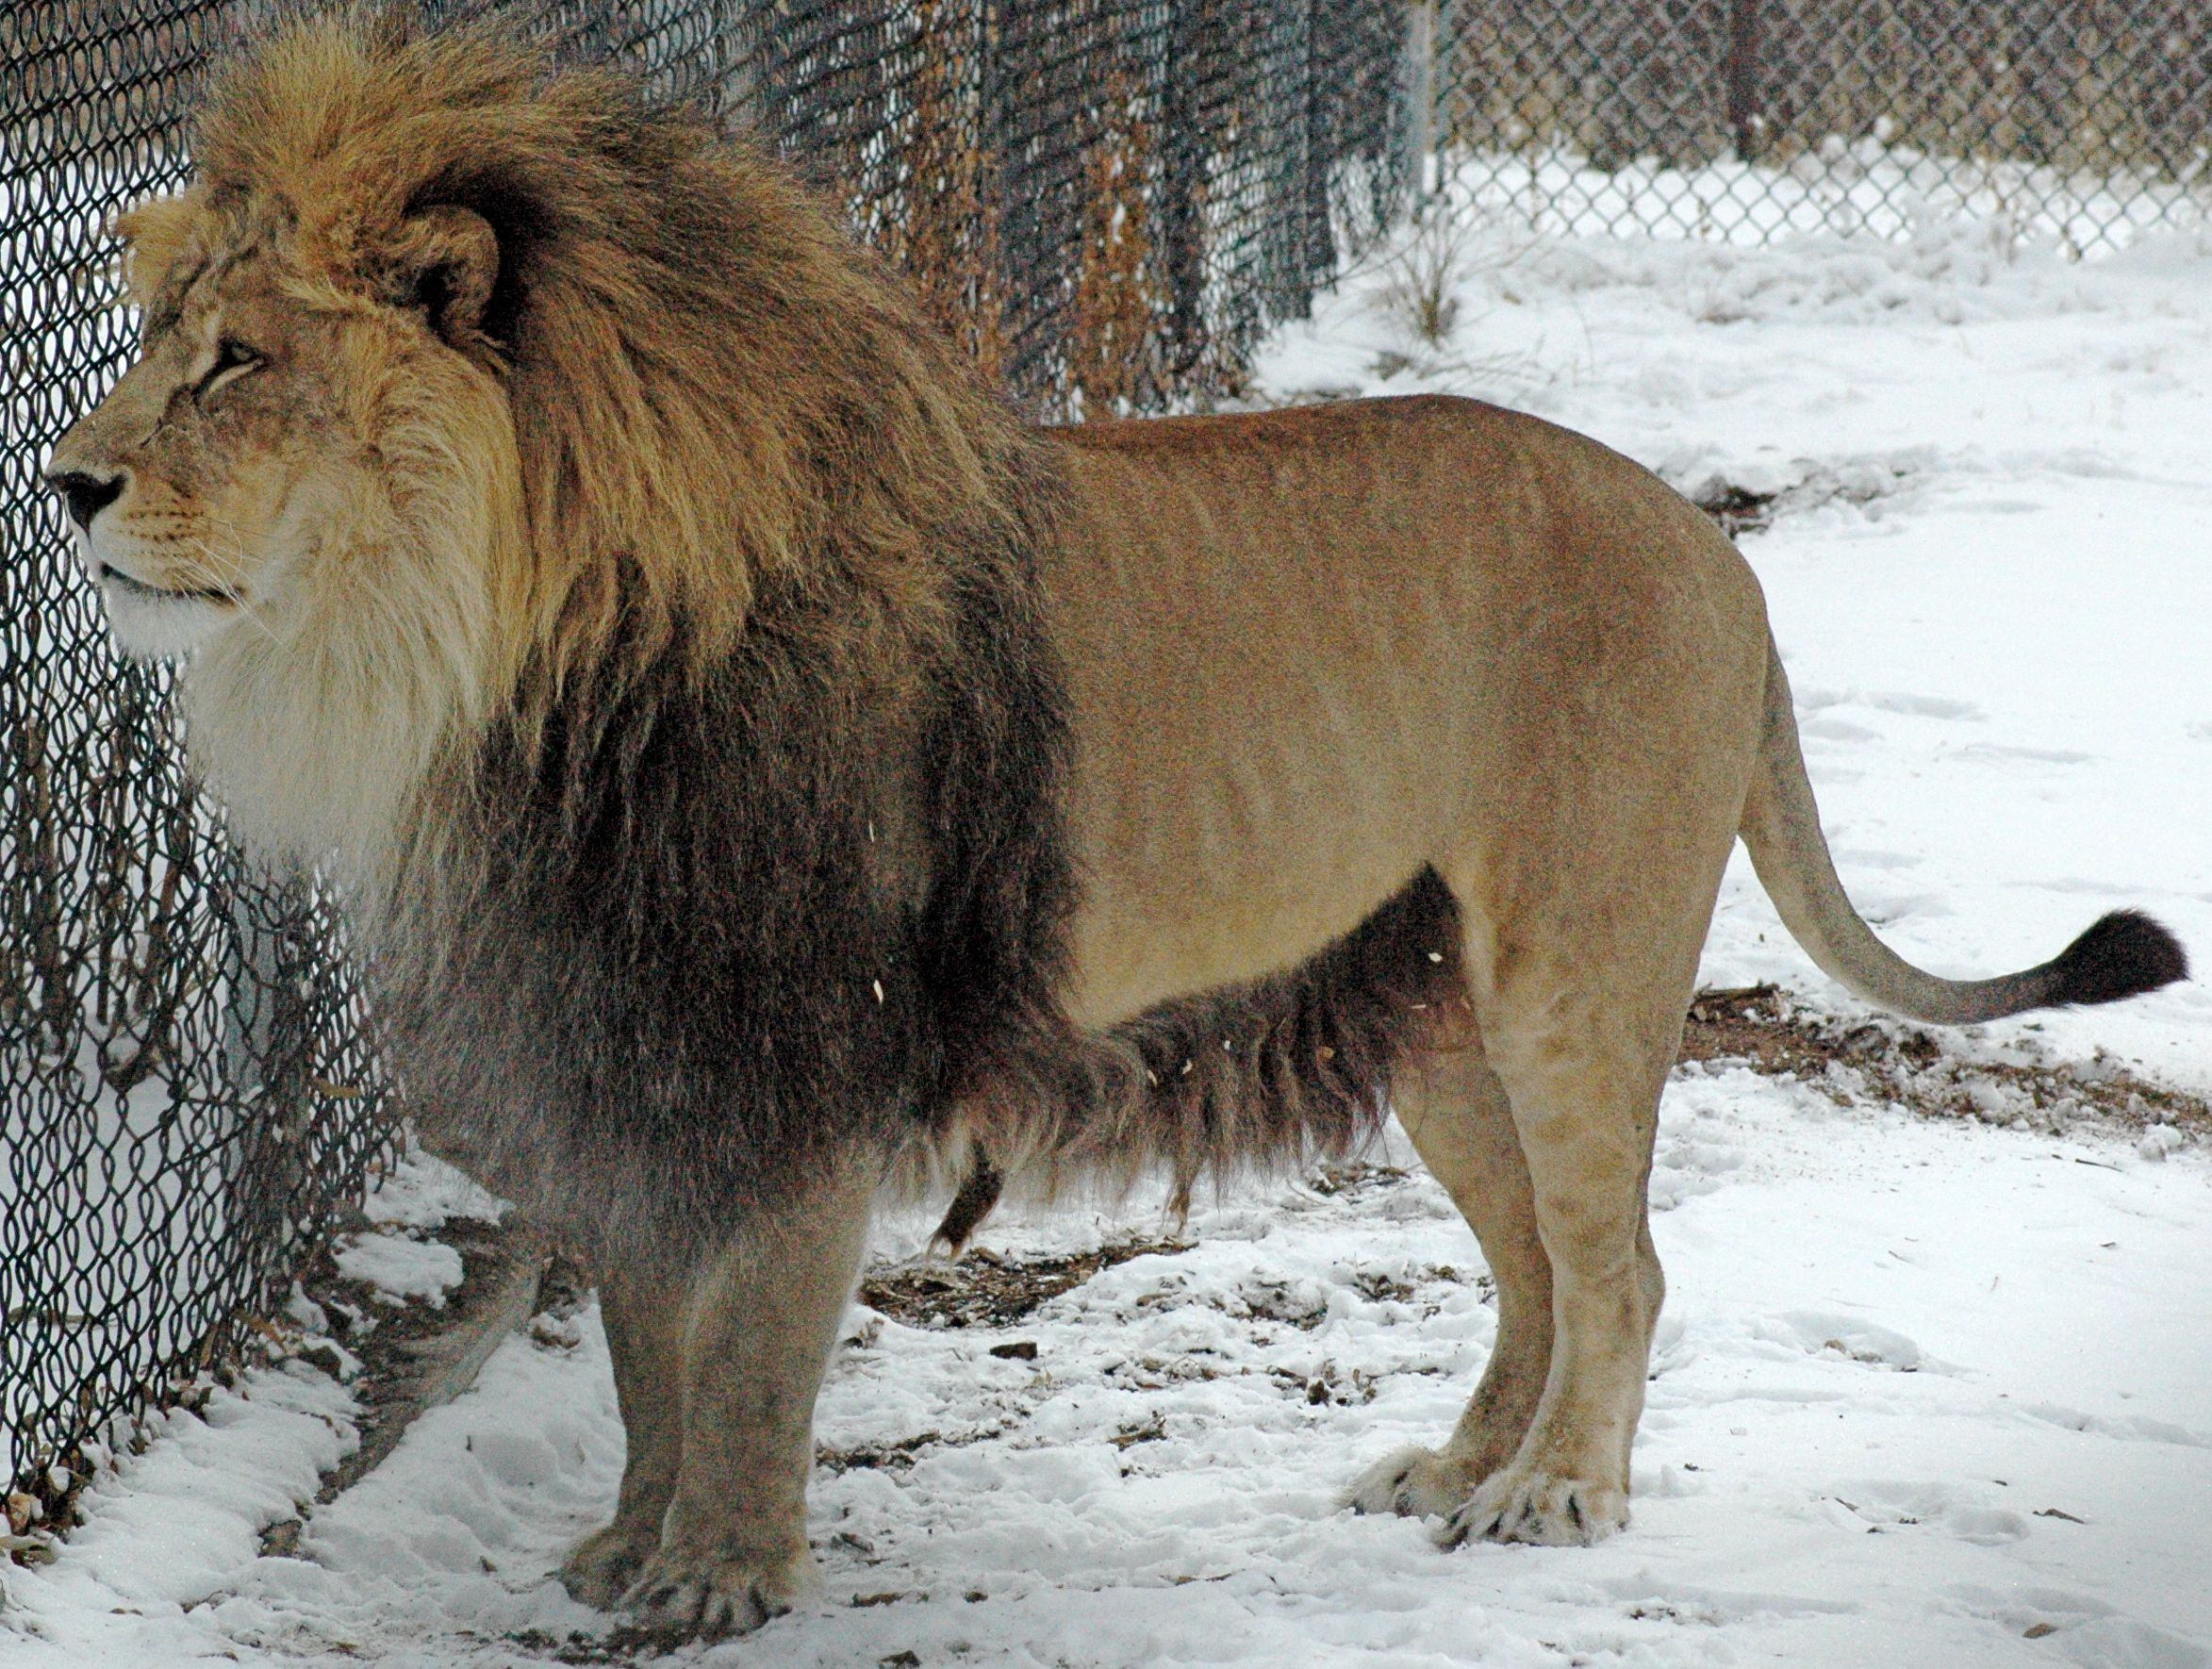 Daniel the lion has Barbary lion characteristics. This boy had a blast chasing his roomie around in the snow.